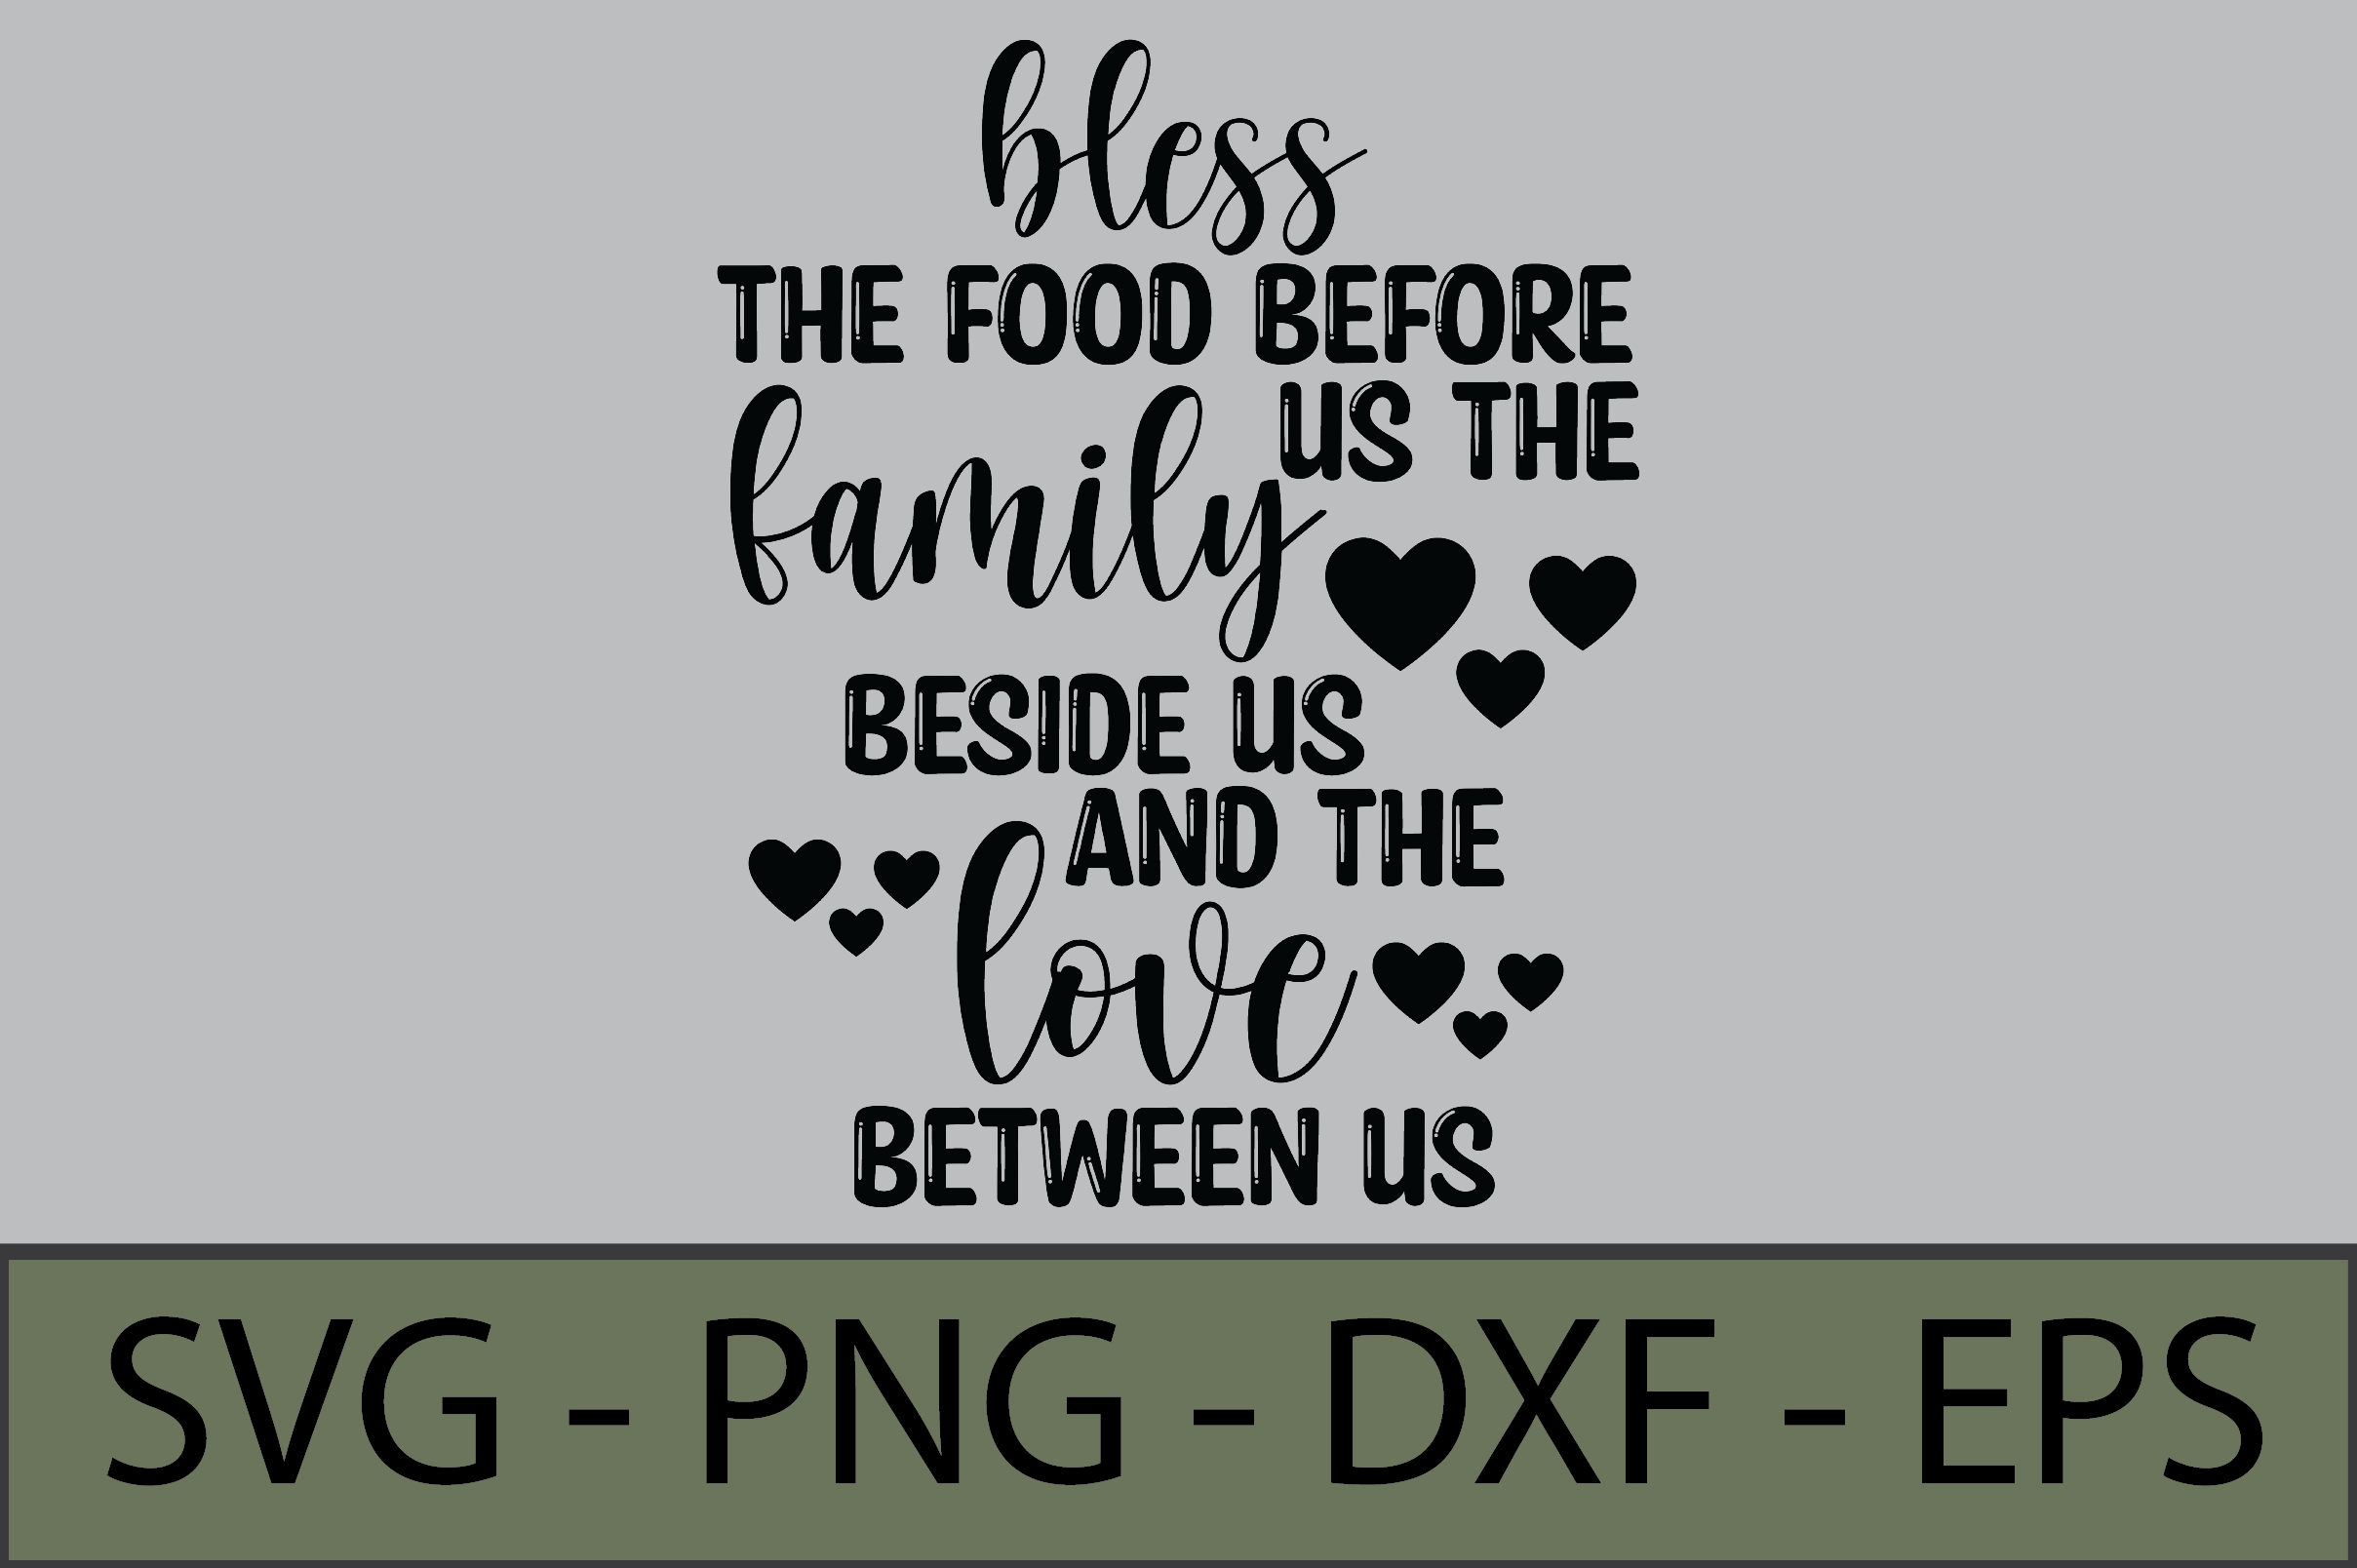 Bless the Food Before Us the Family SVG File